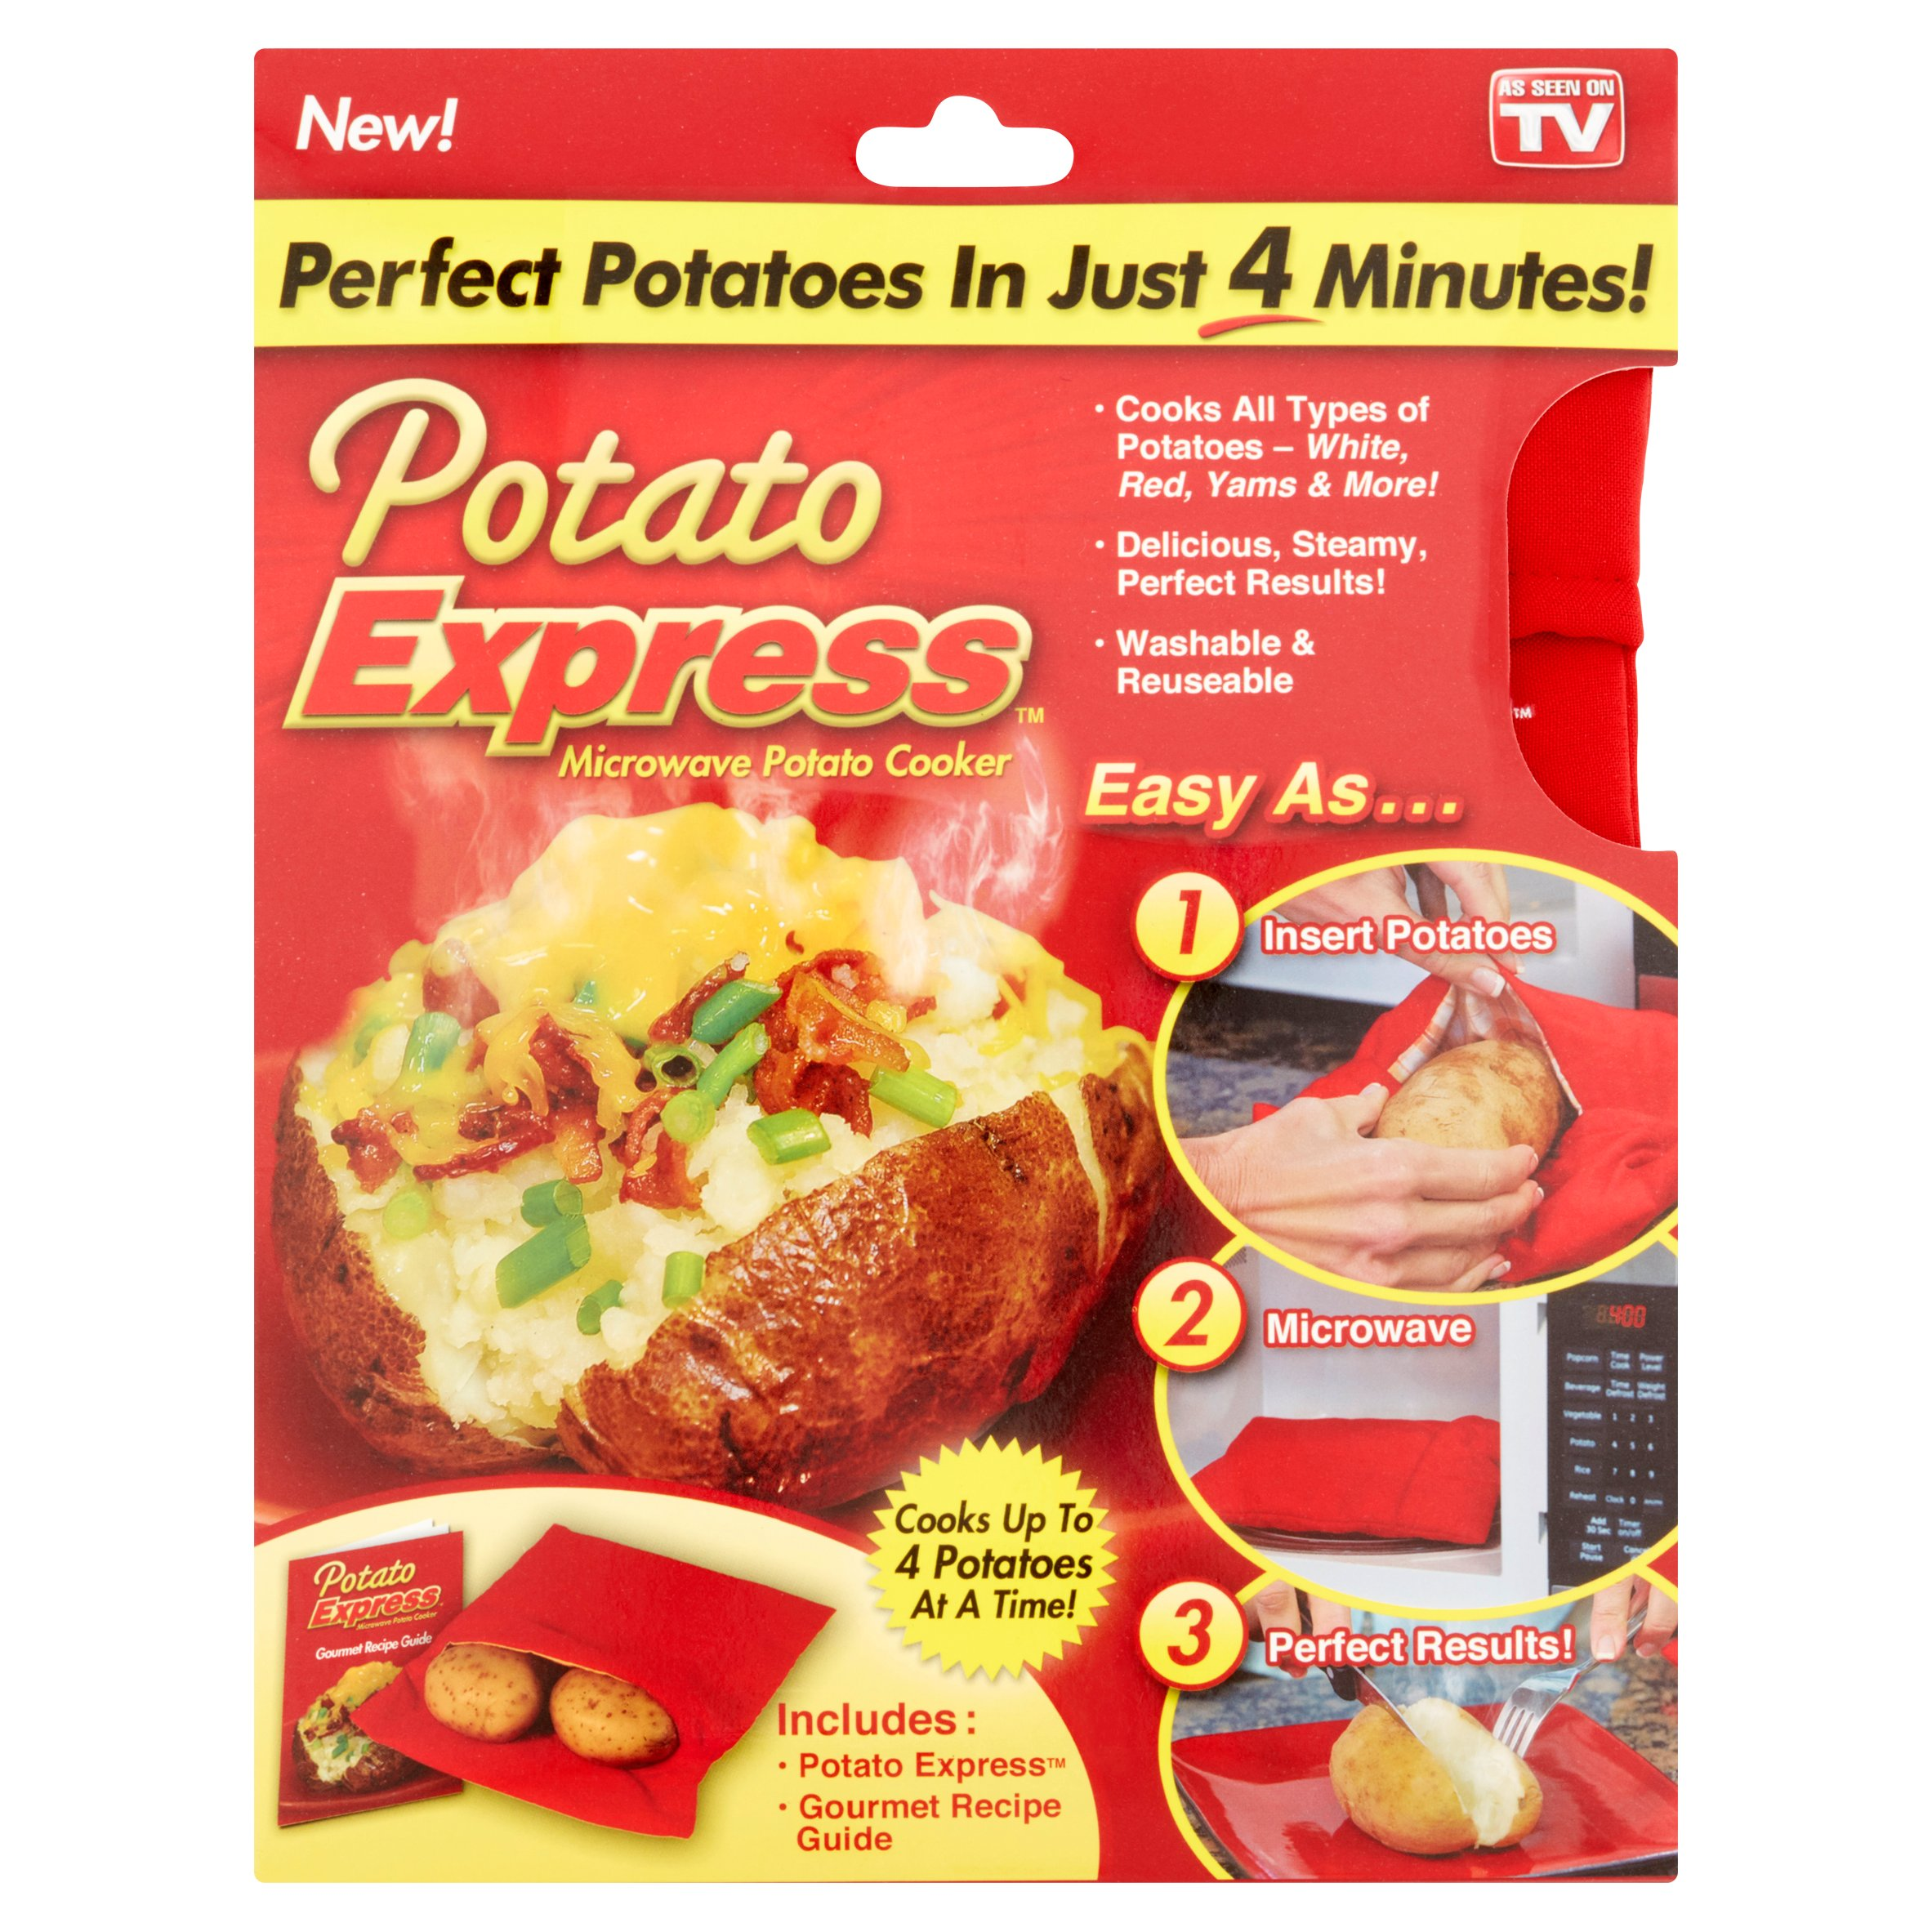 as seen on tv, potato express microwave potato cooker - walmart